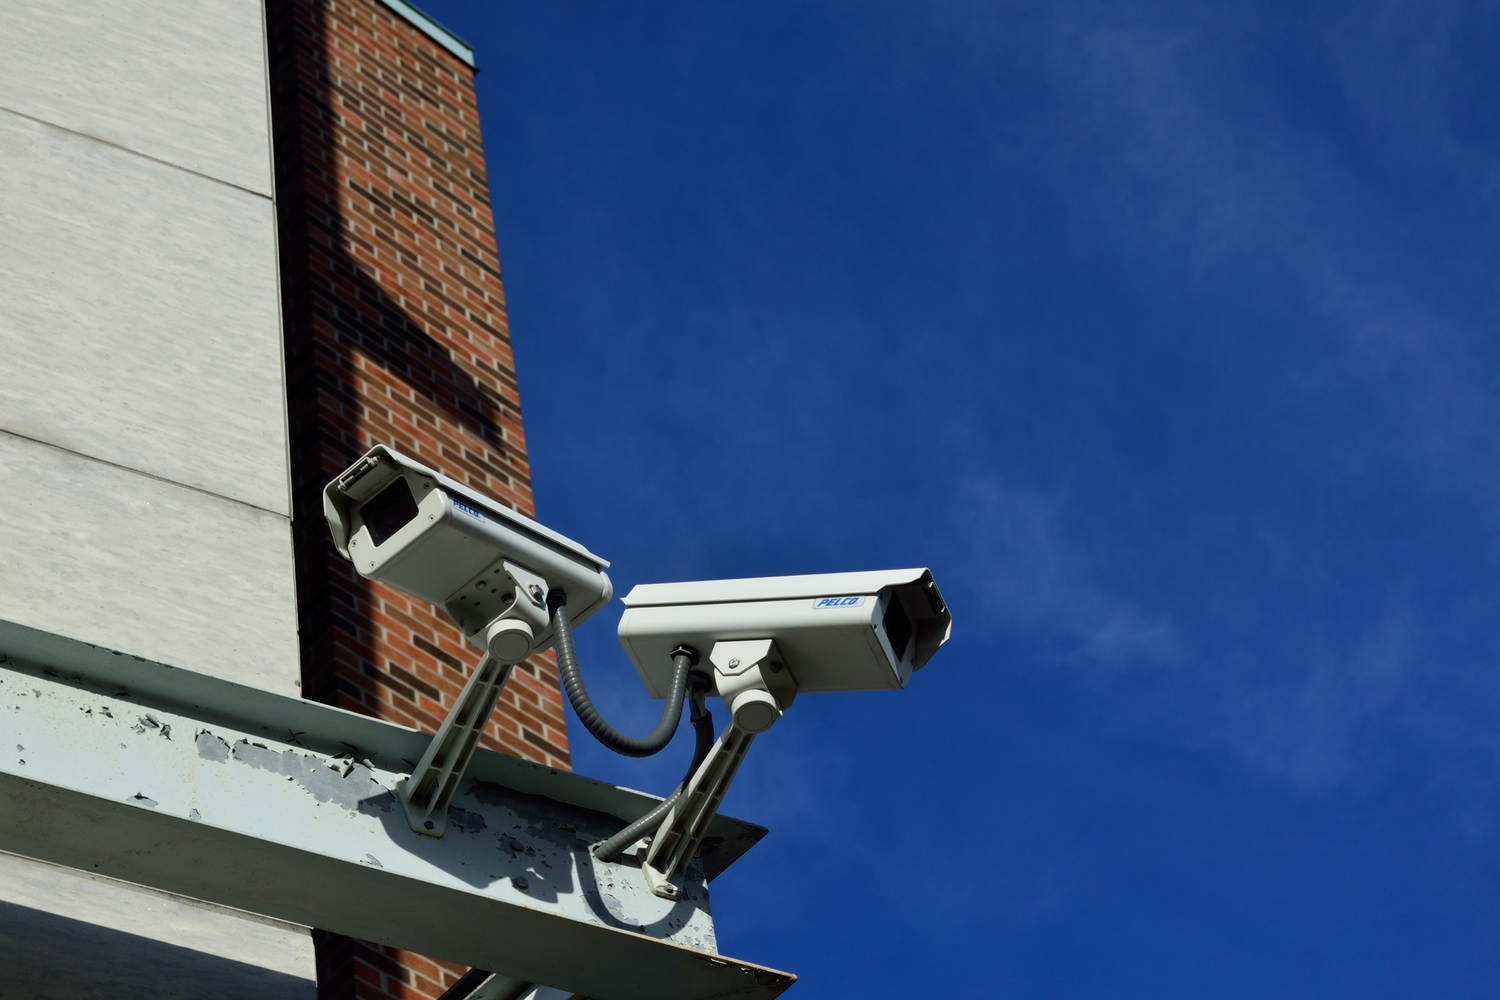 Security camera operating as part of a physical security information management system